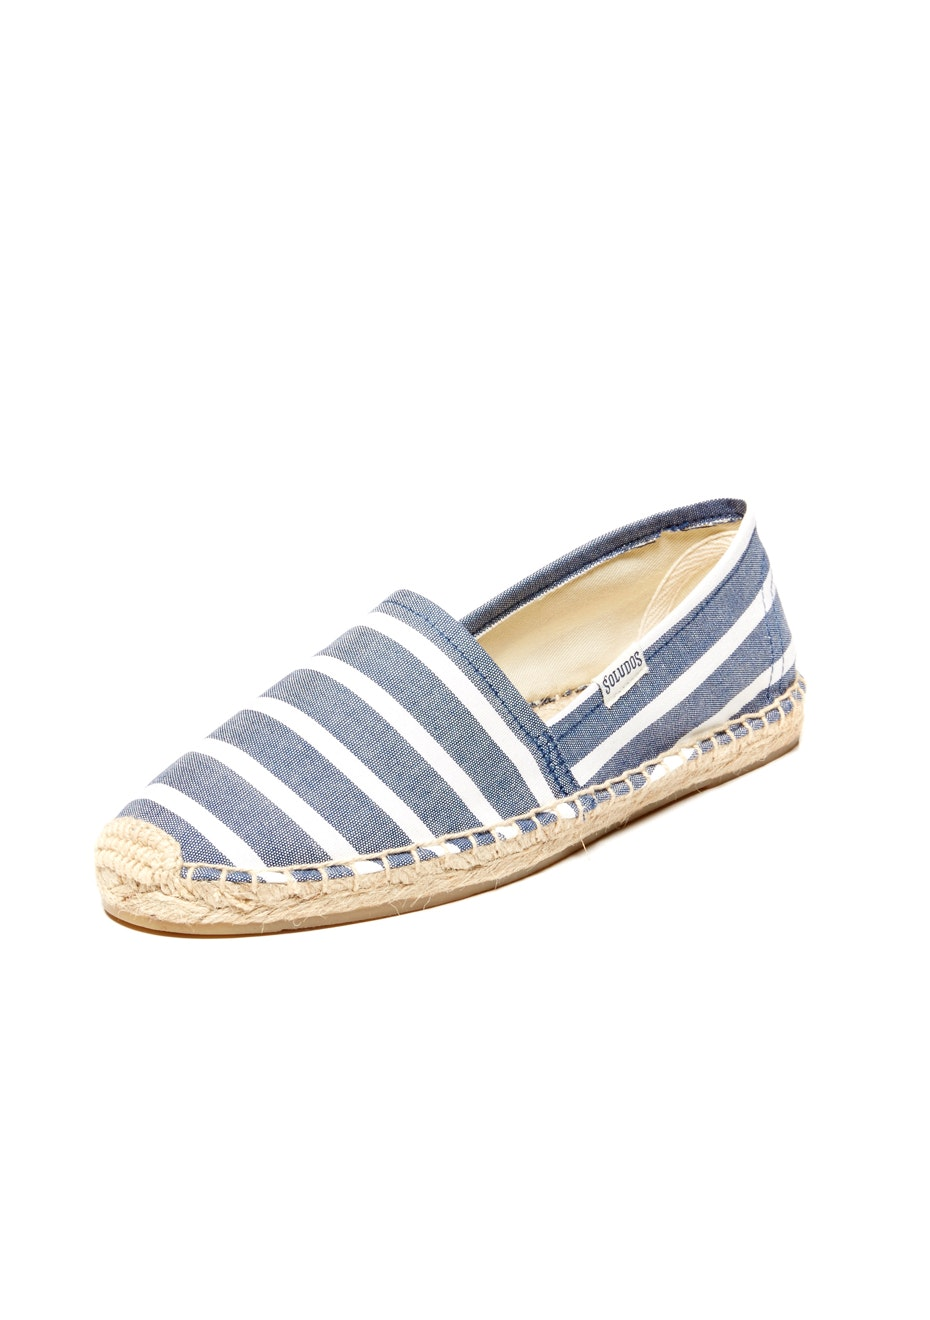 Soludos - Original Dali Stripe - Light Navy/White